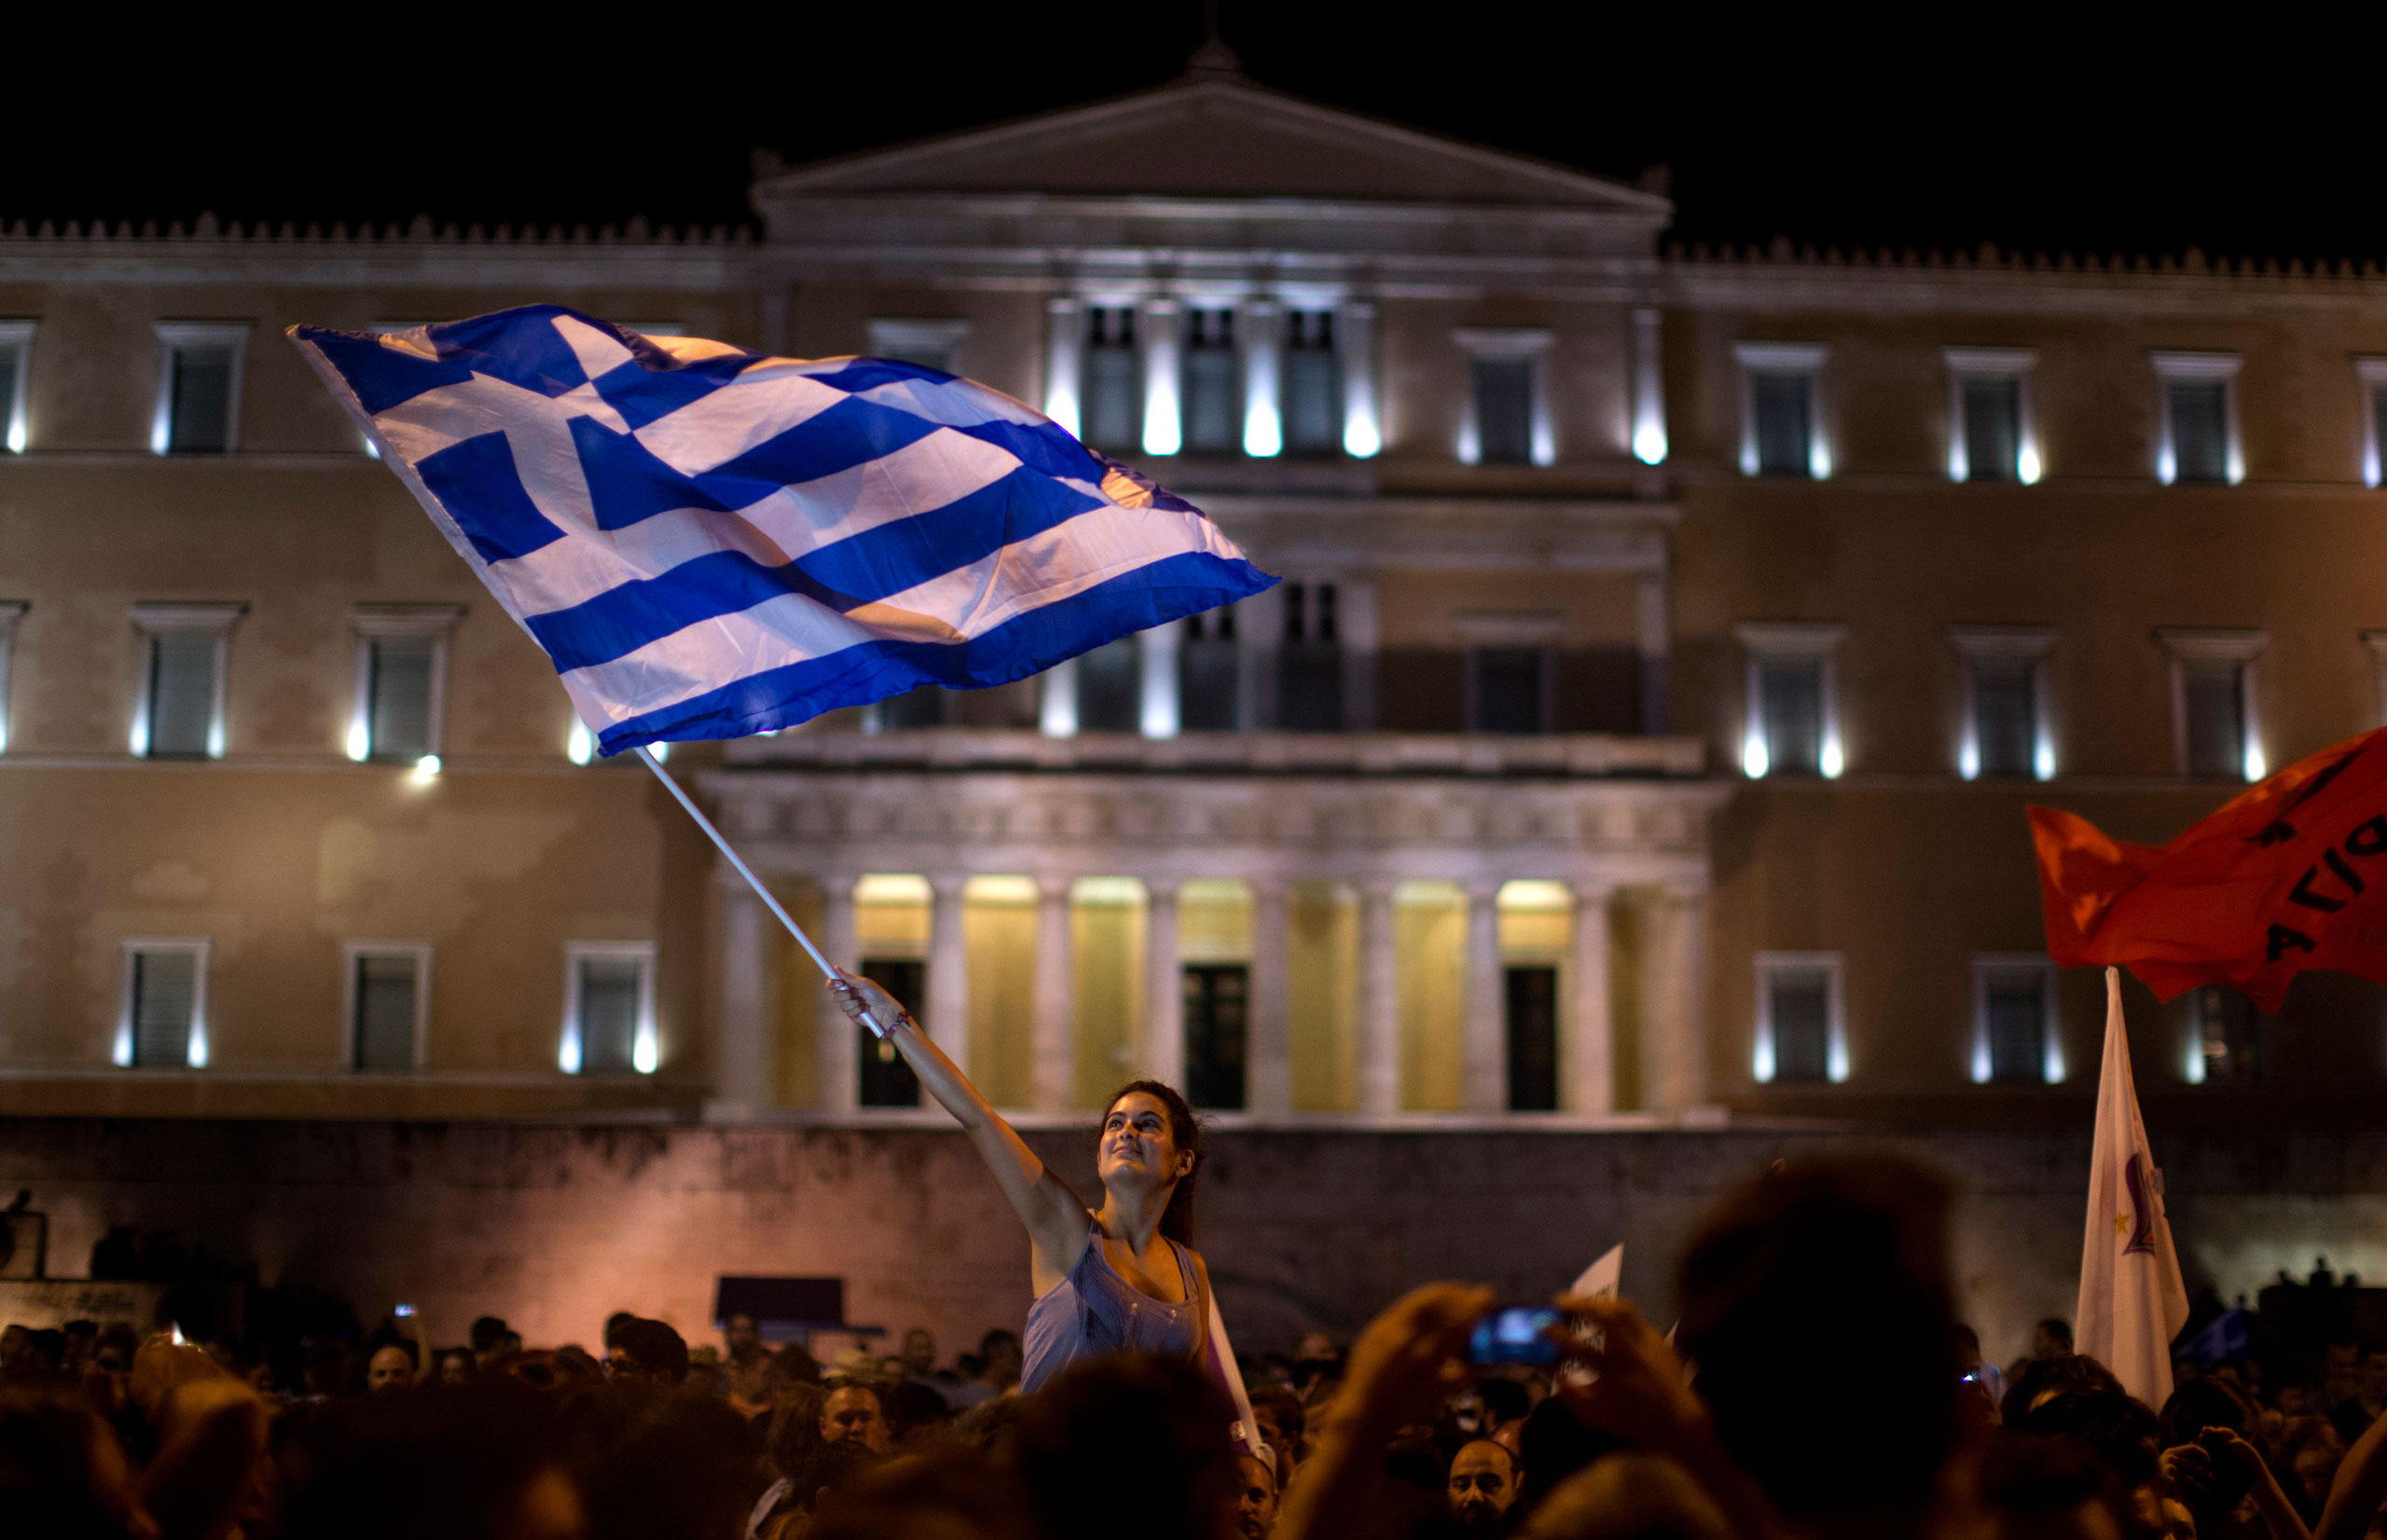 A supporter of the No vote waves a Greek flag in front of the parliament after the results of the referendum at Syntagma square in Athens,on July 5, 2015.